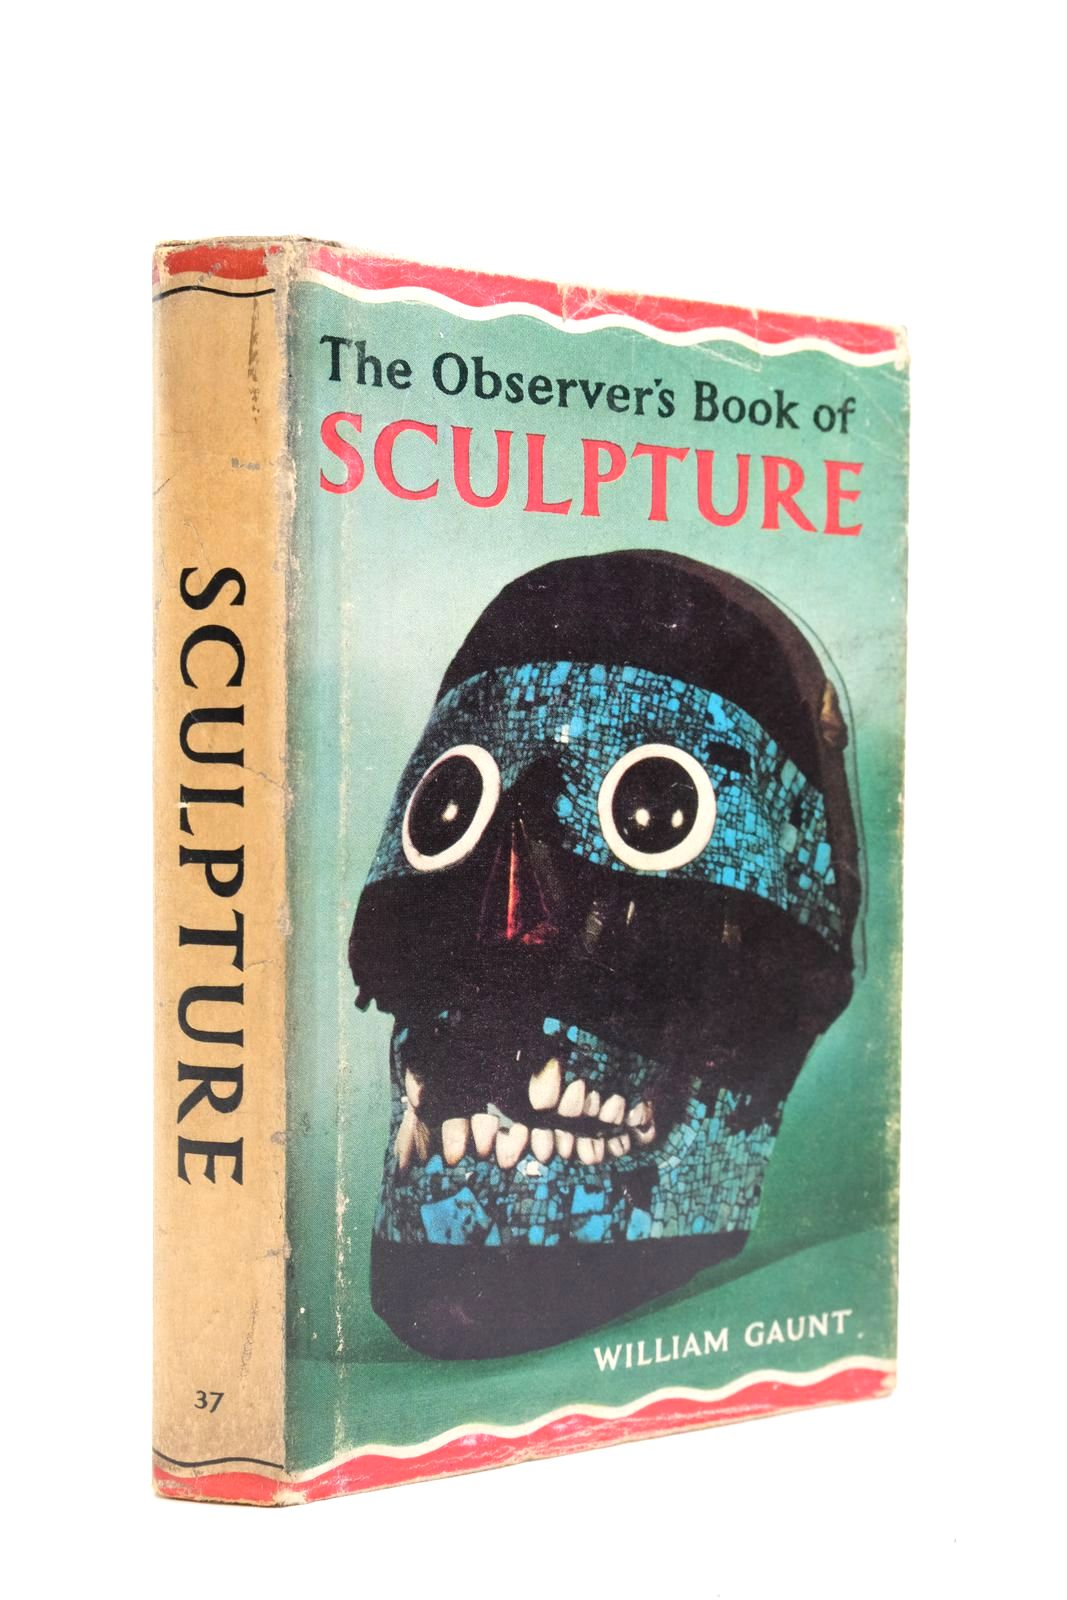 Photo of THE OBSERVER'S BOOK OF SCULPTURE written by Gaunt, William published by Frederick Warne & Co Ltd. (STOCK CODE: 2134658)  for sale by Stella & Rose's Books